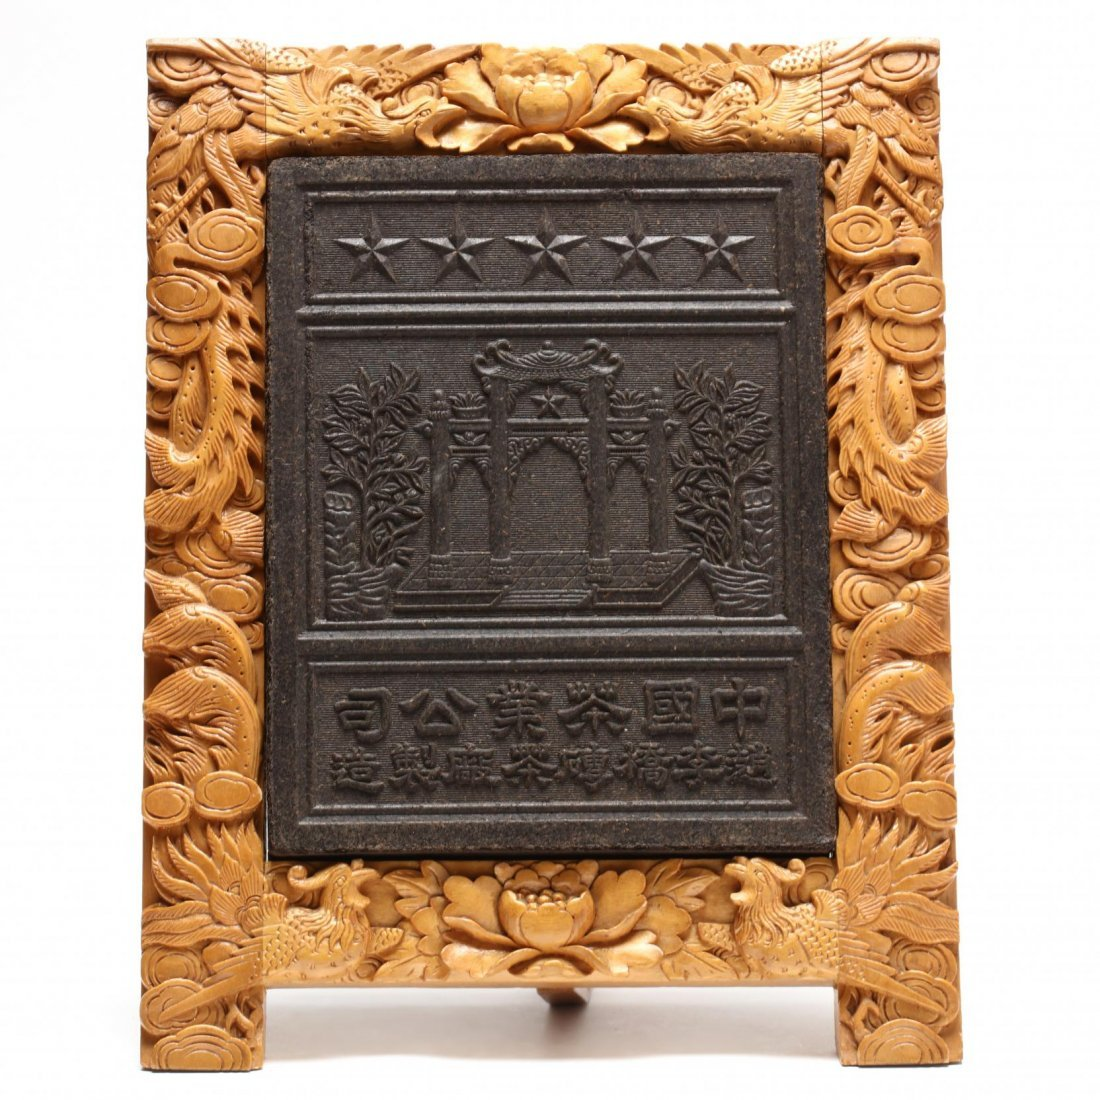 Chinese Framed Hubei (Black Tea) Brick